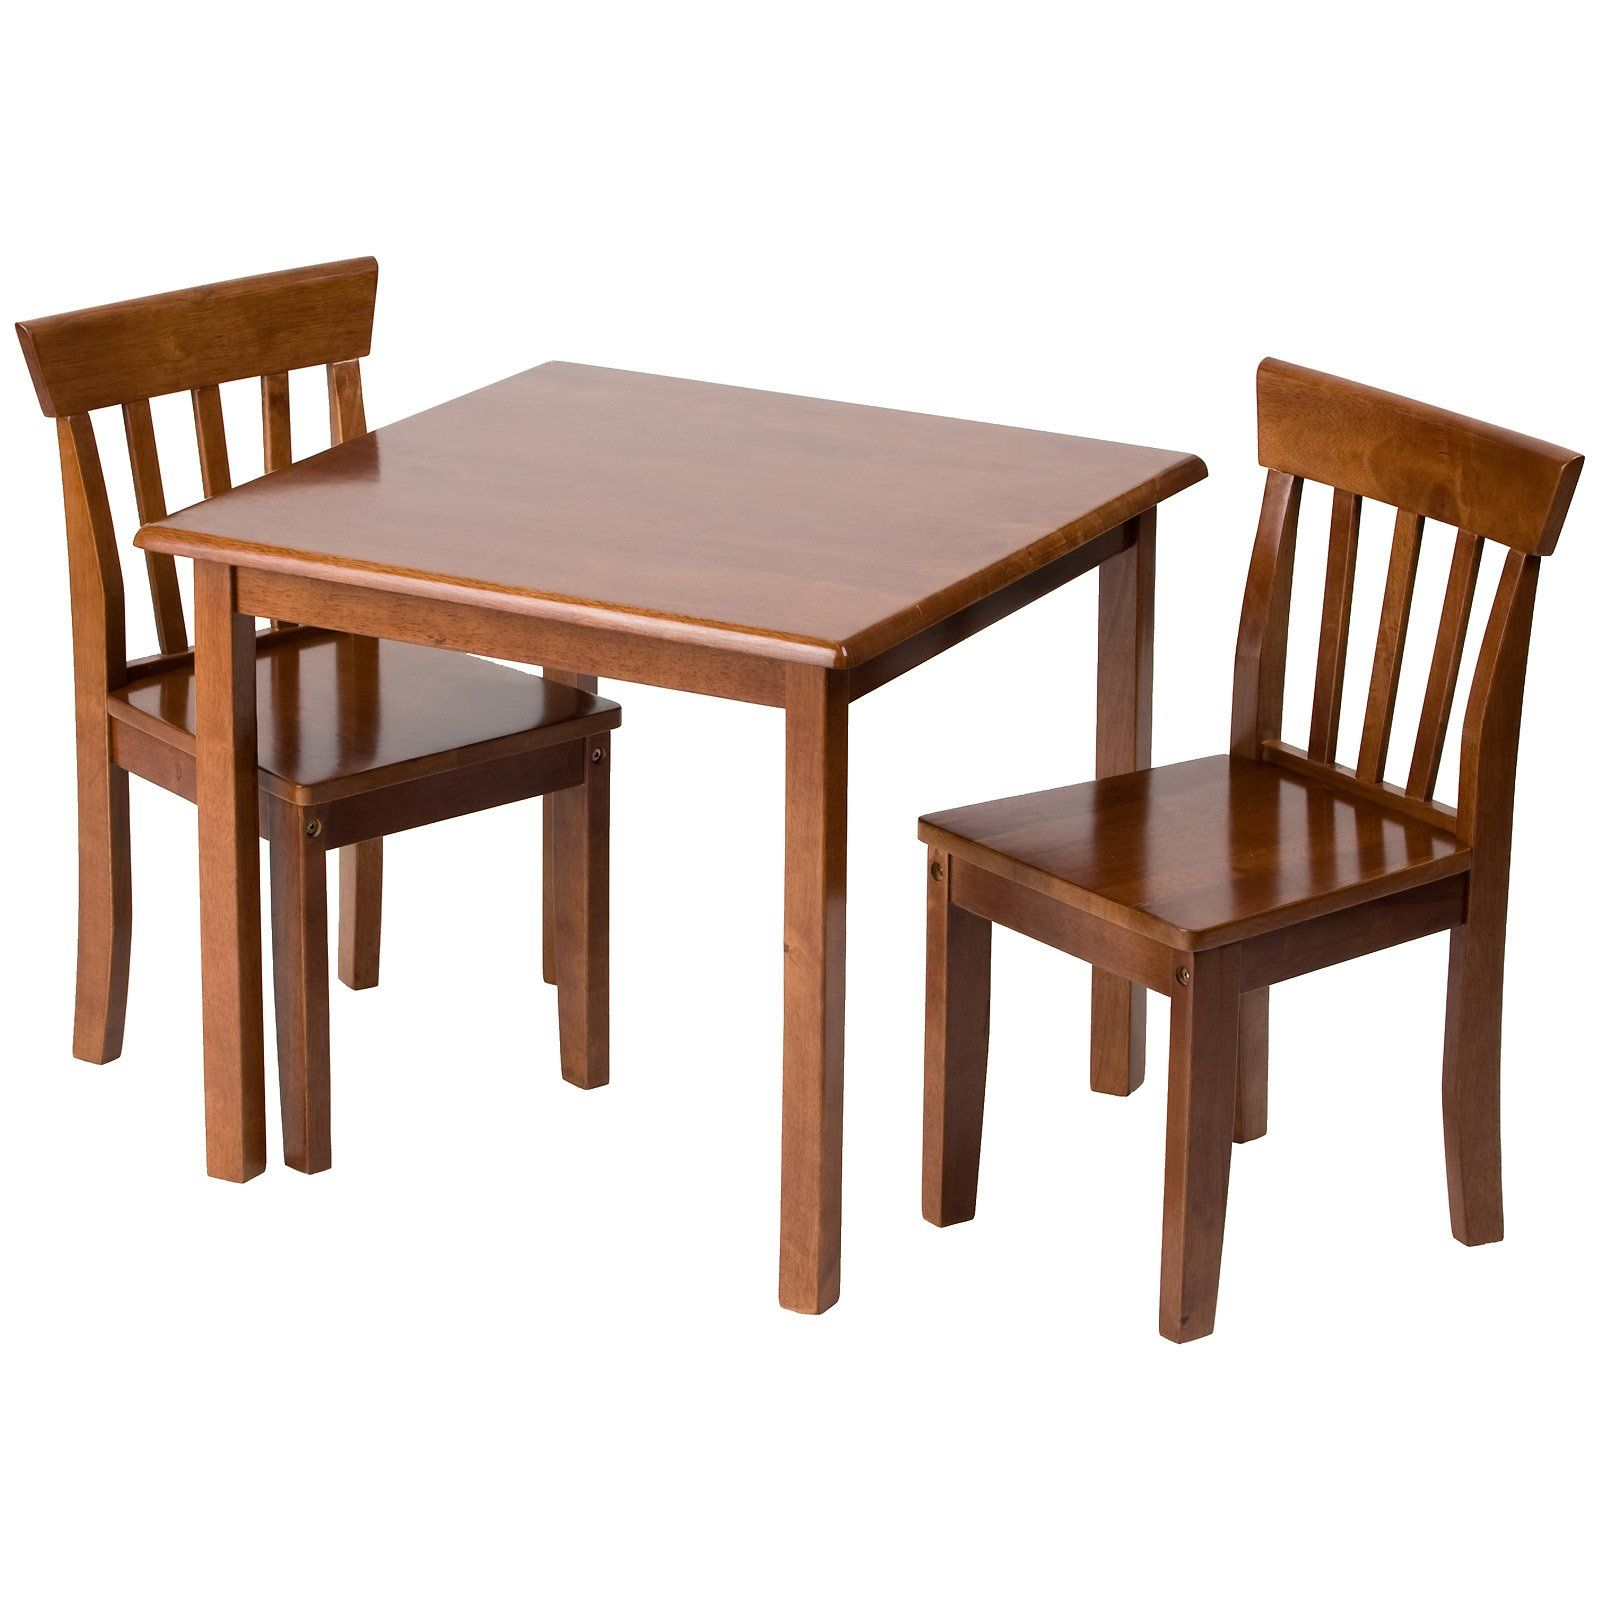 Childrens Wooden Table And Chairs Furniture Kids Room Square Top Brown Varnished Mahogany Wood Table